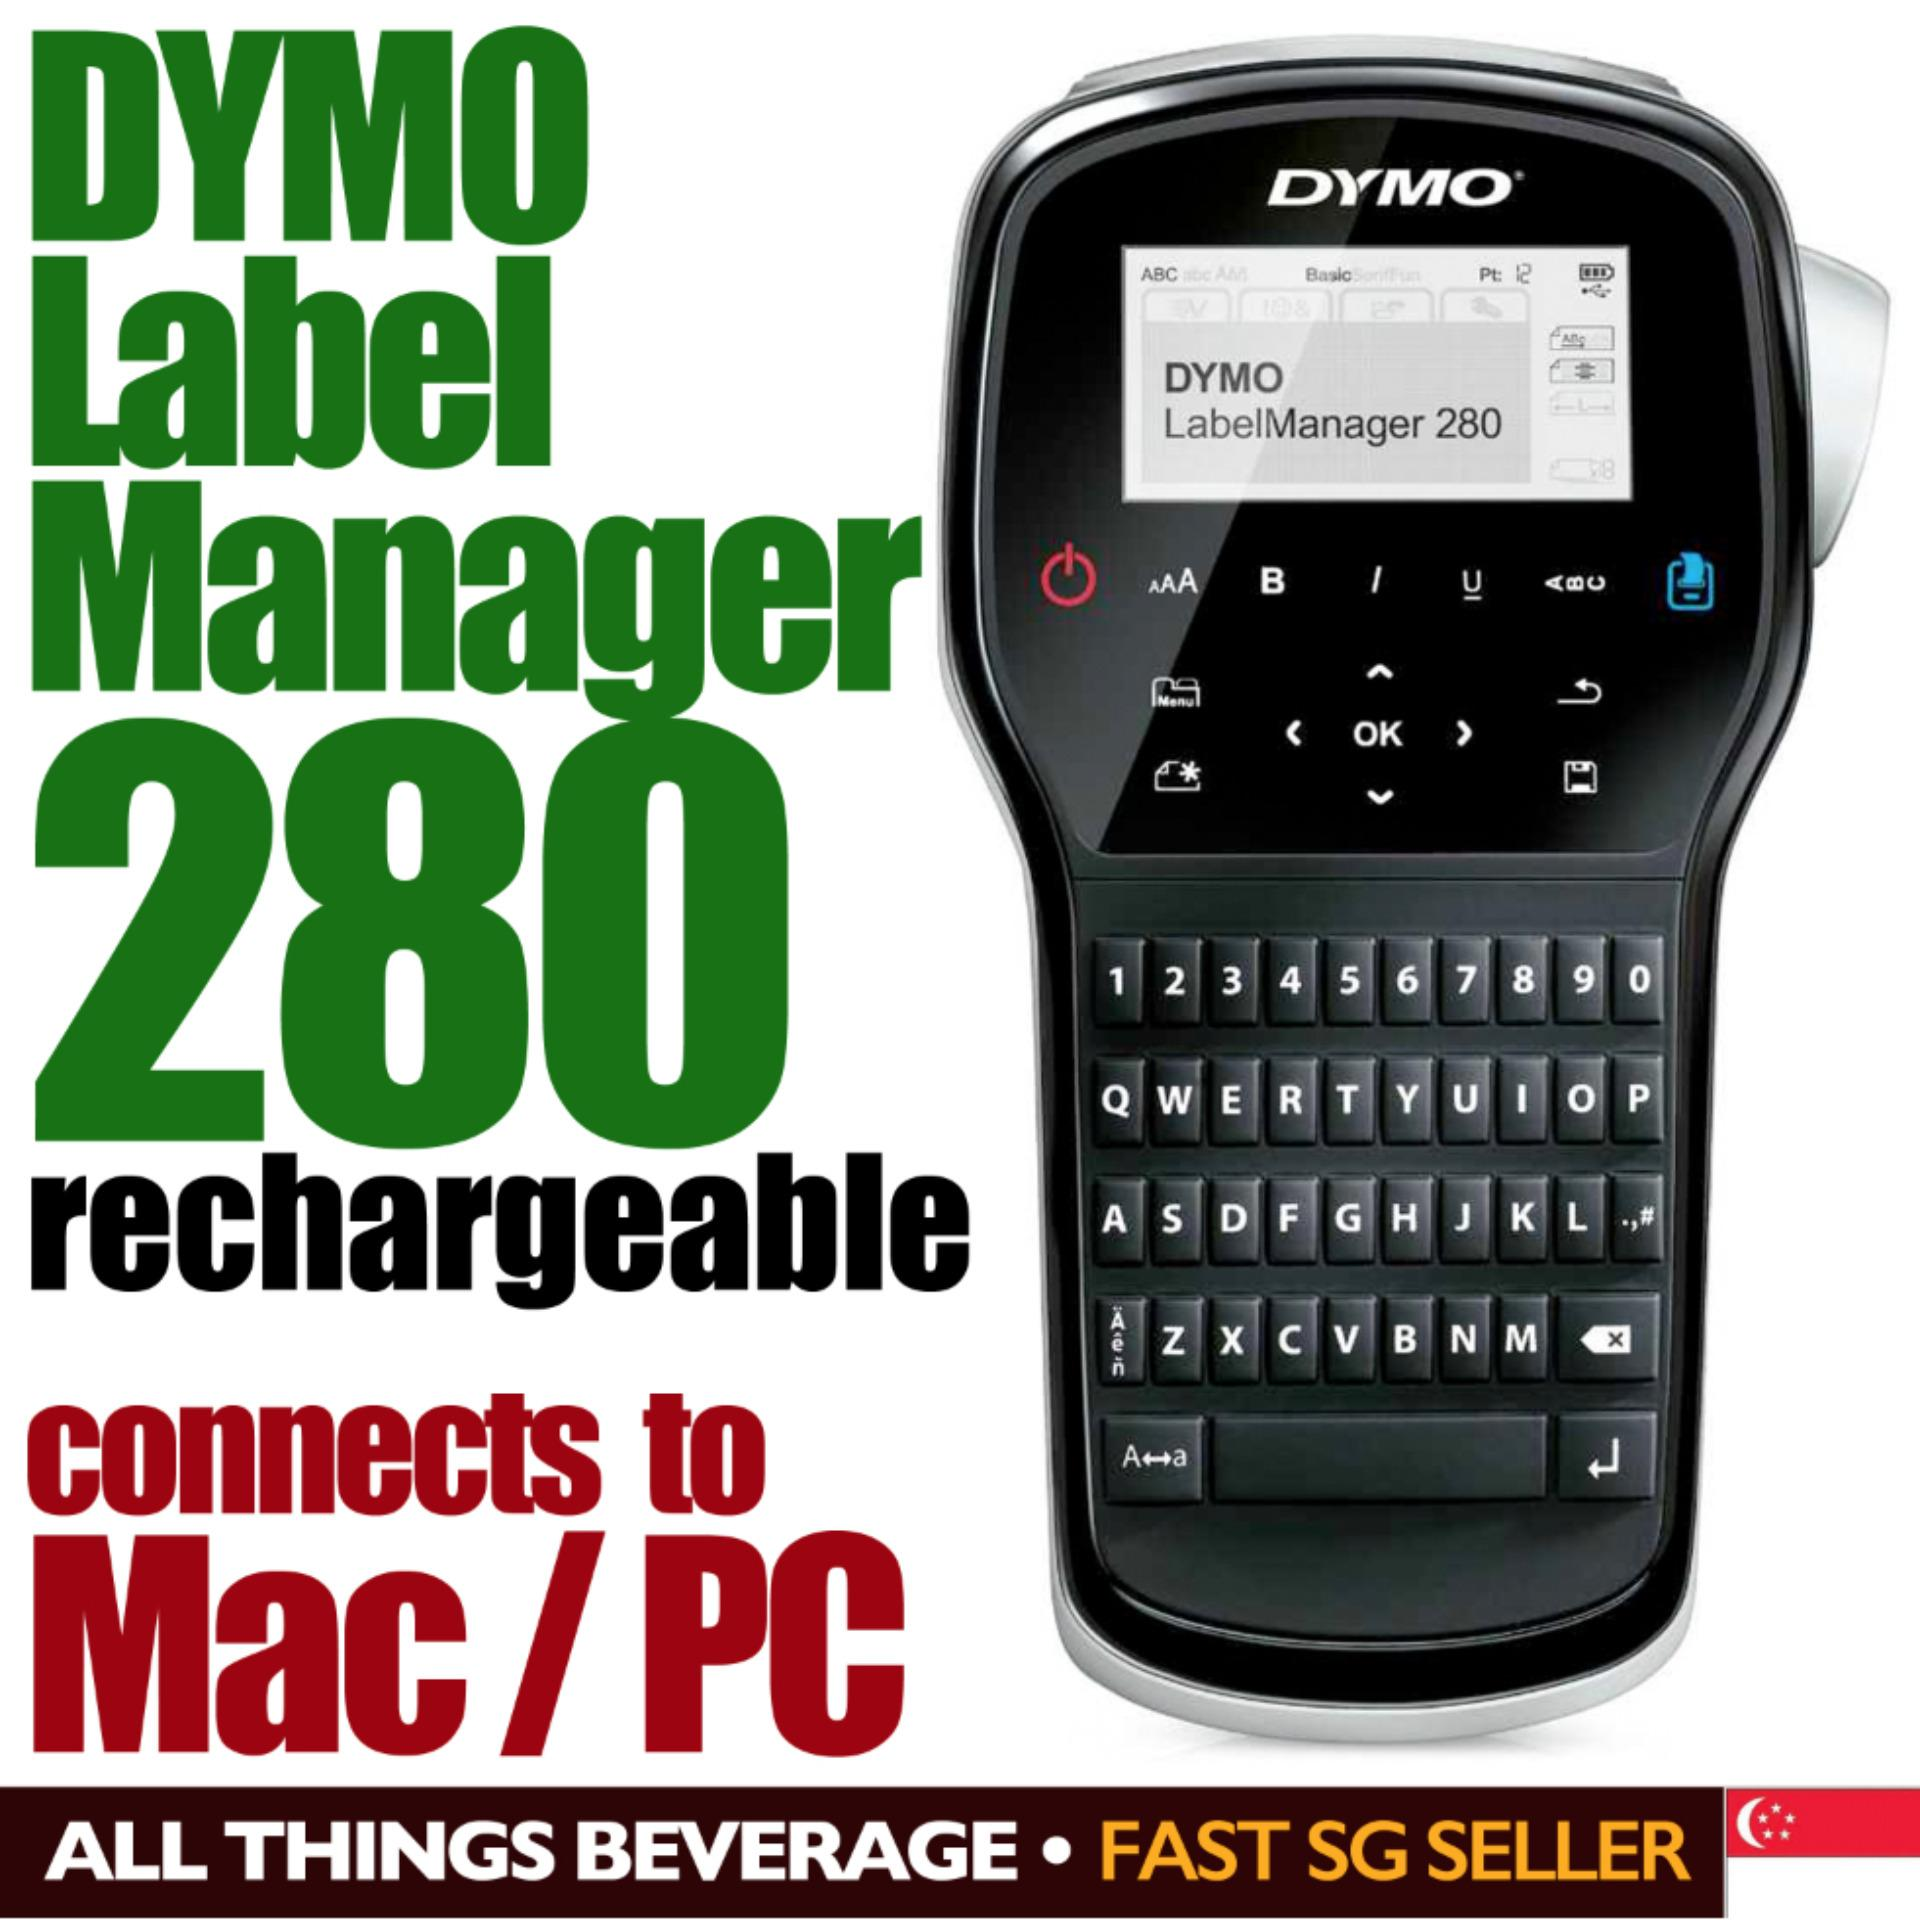 Dymo buy dymo at best price in singapore lazada dymo labelmanager 280 hand held label printer rechargeable connect to mac pc reheart Image collections